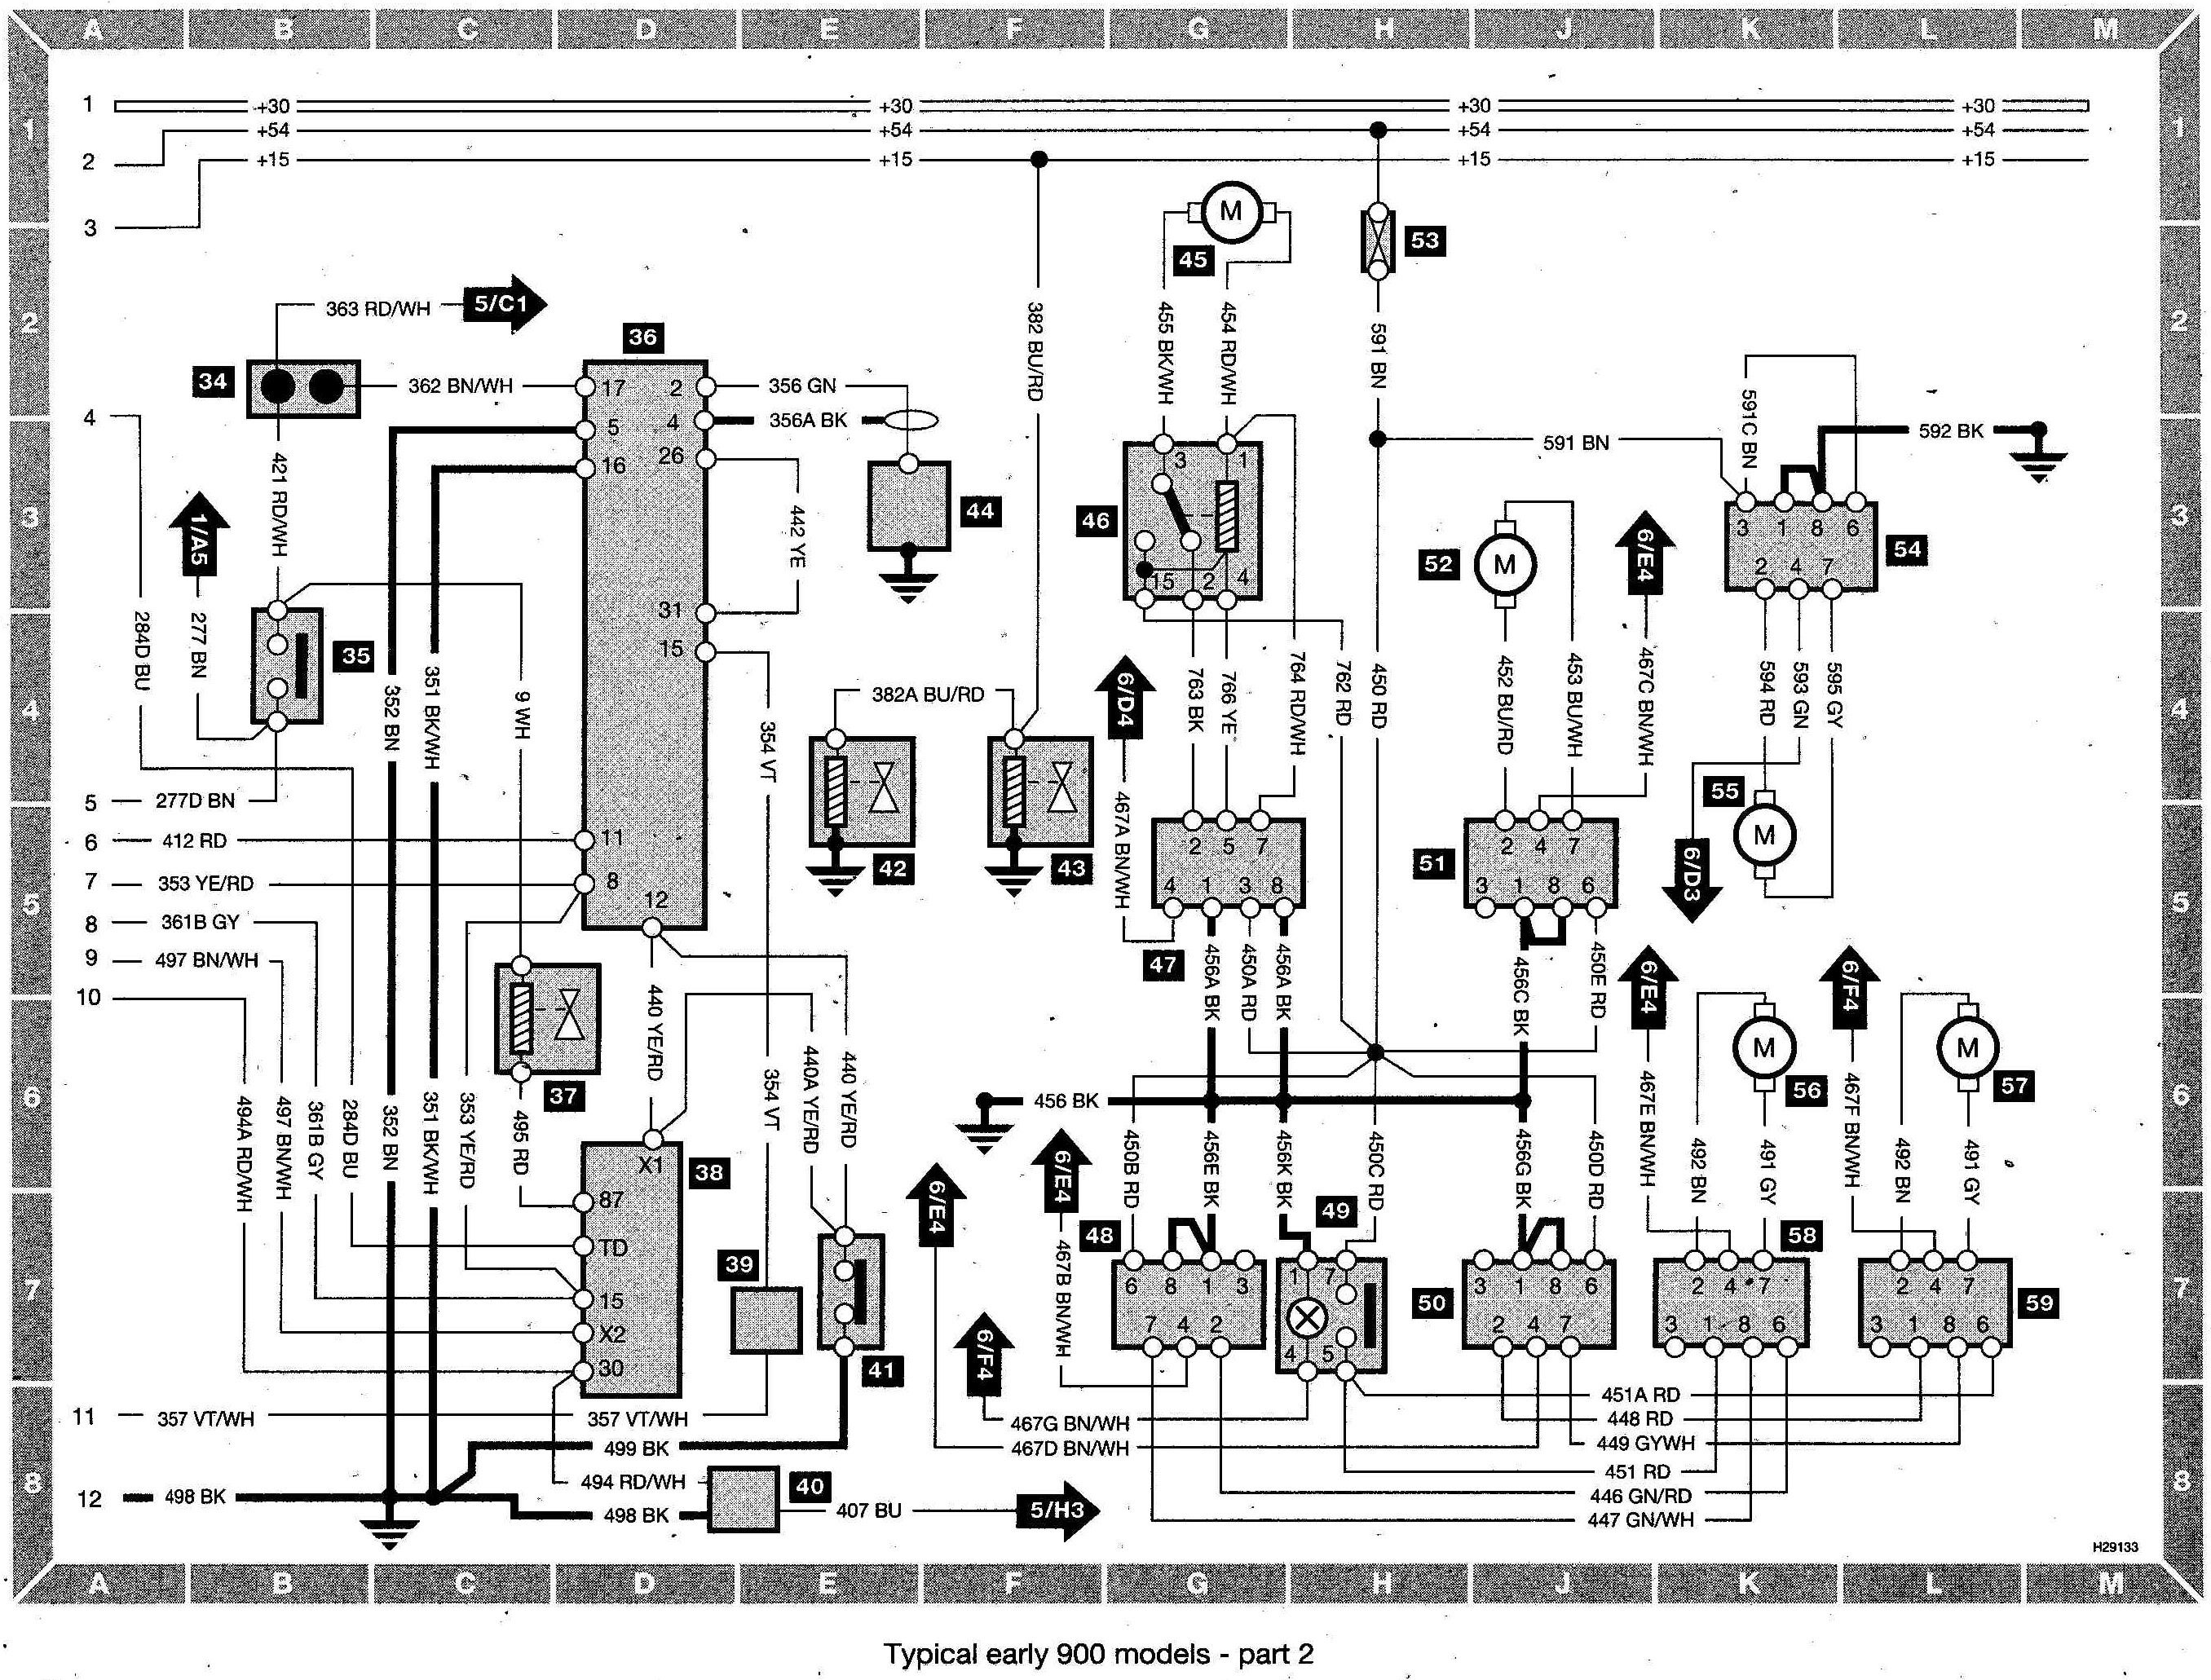 [WRG-6251] 2004 Saab 9 3 Fuse Diagram Radio